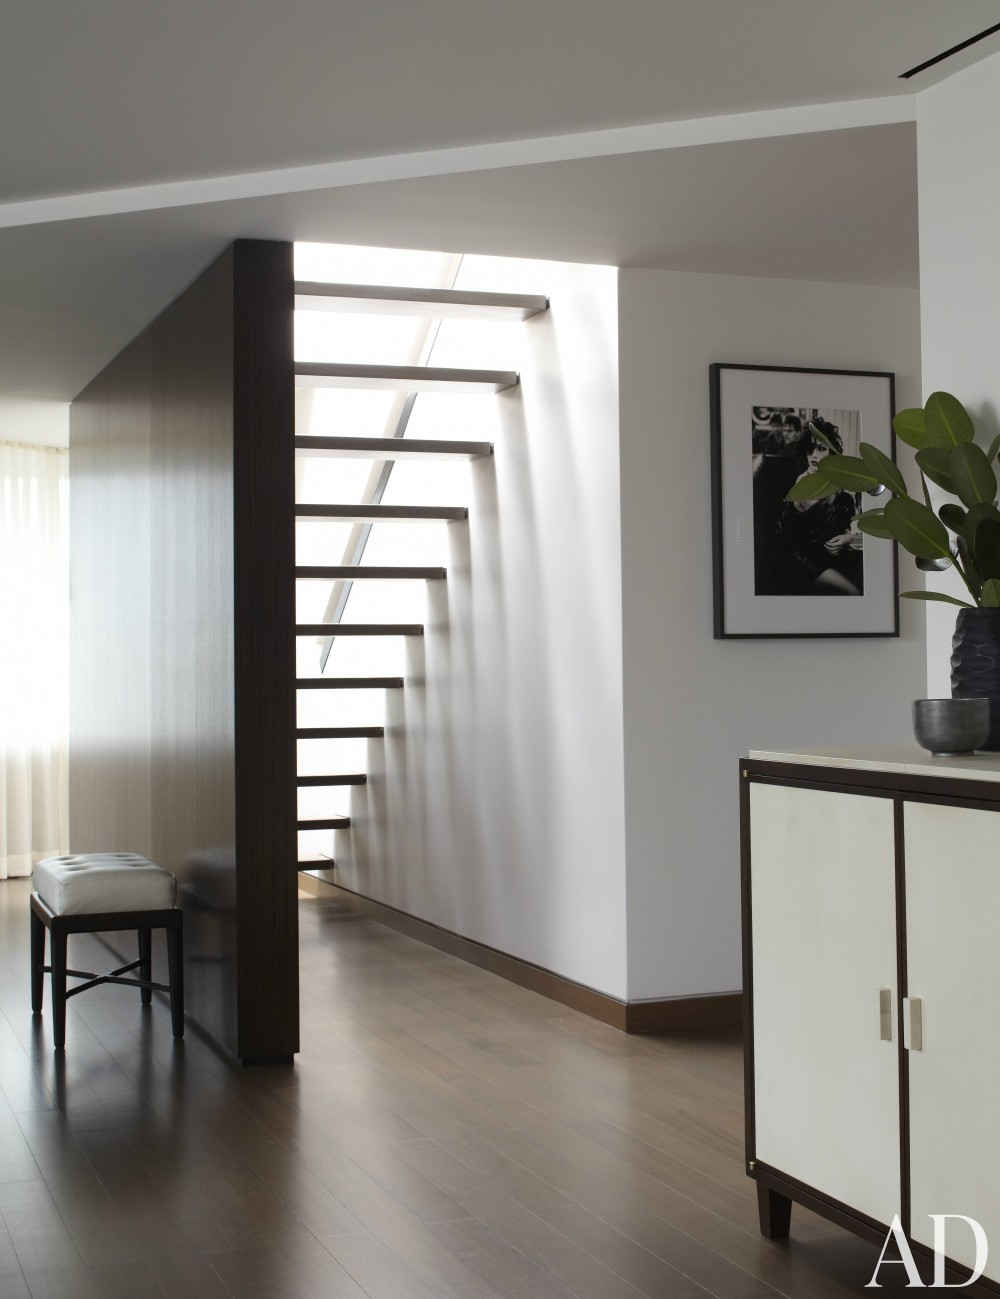 Contemporary Staircase/Hallway by S. Russell Groves and S. Russell Groves in New York, New York